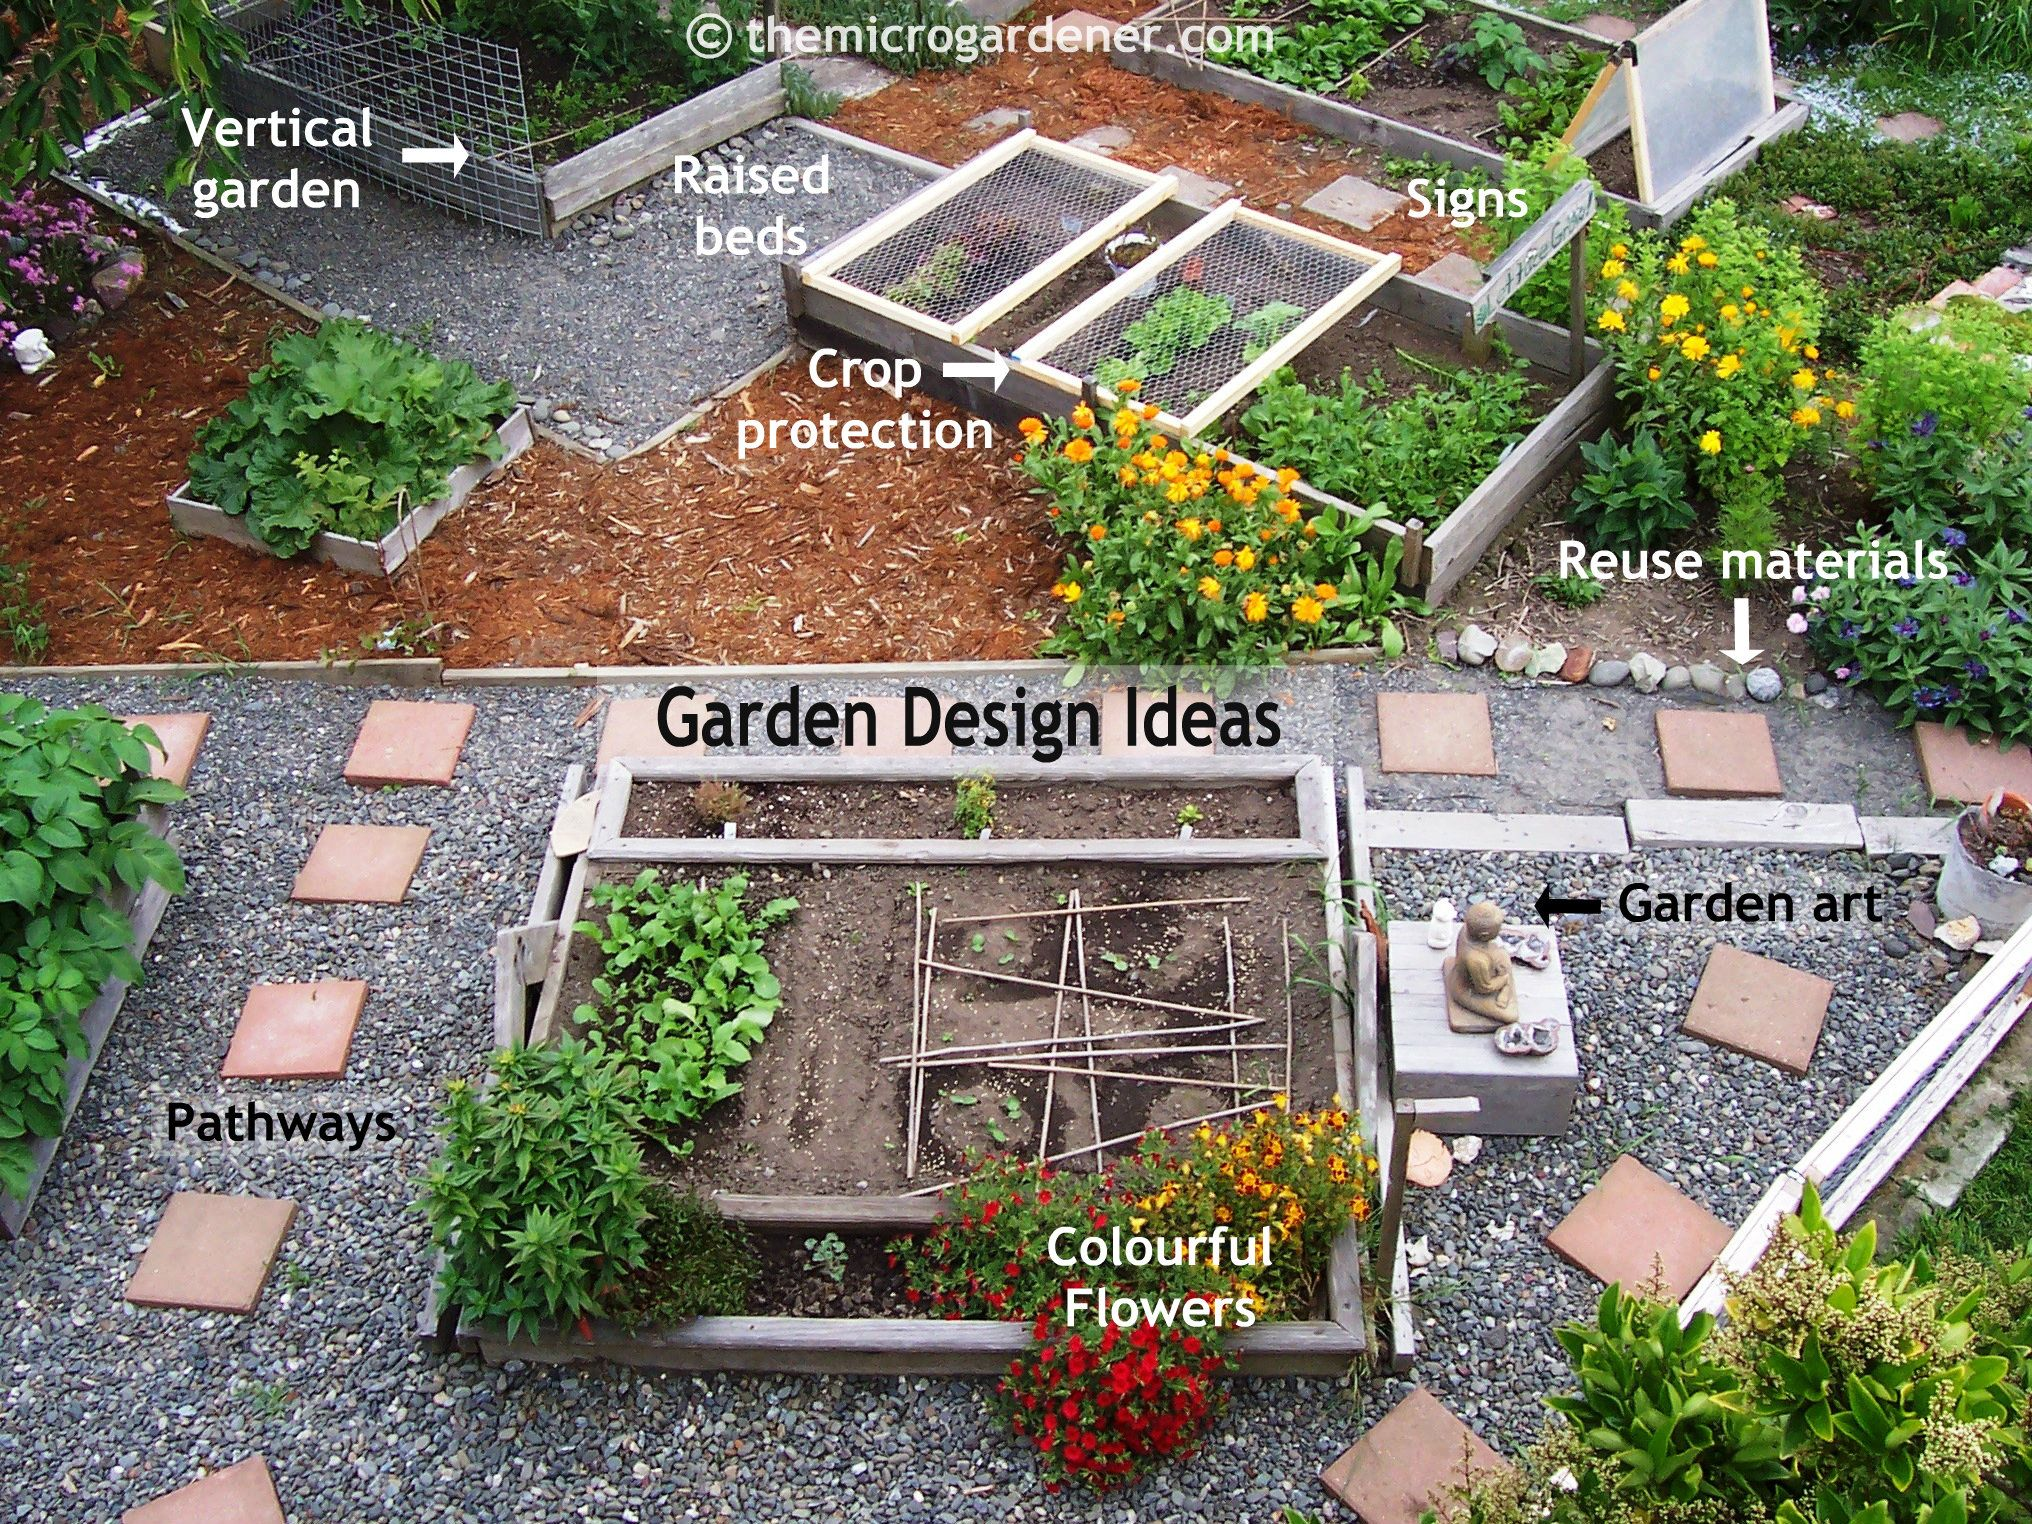 Small garden design ideas on pinterest vertical gardens for Best small garden designs